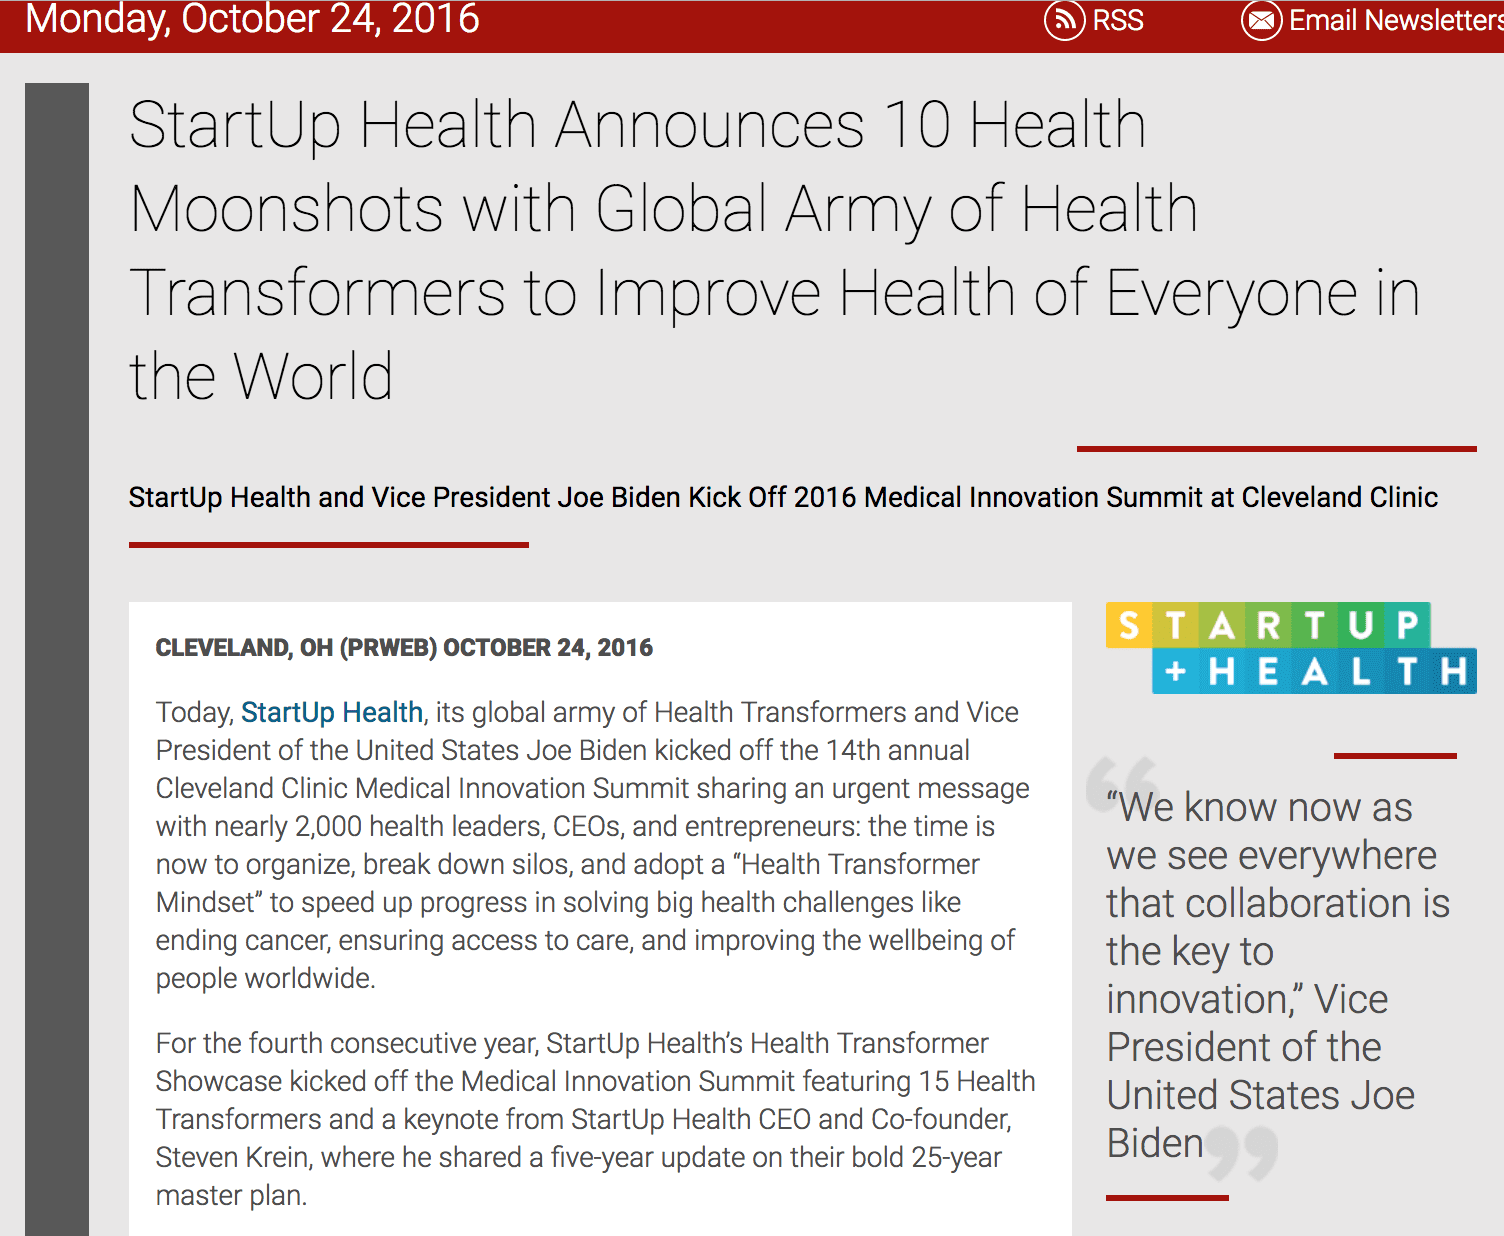 Jean Anne Booth Mentioned in StartUp Health Announces 10 Health Moonshots with Global Army of Health Transformers to Improve Health of Everyone in the World